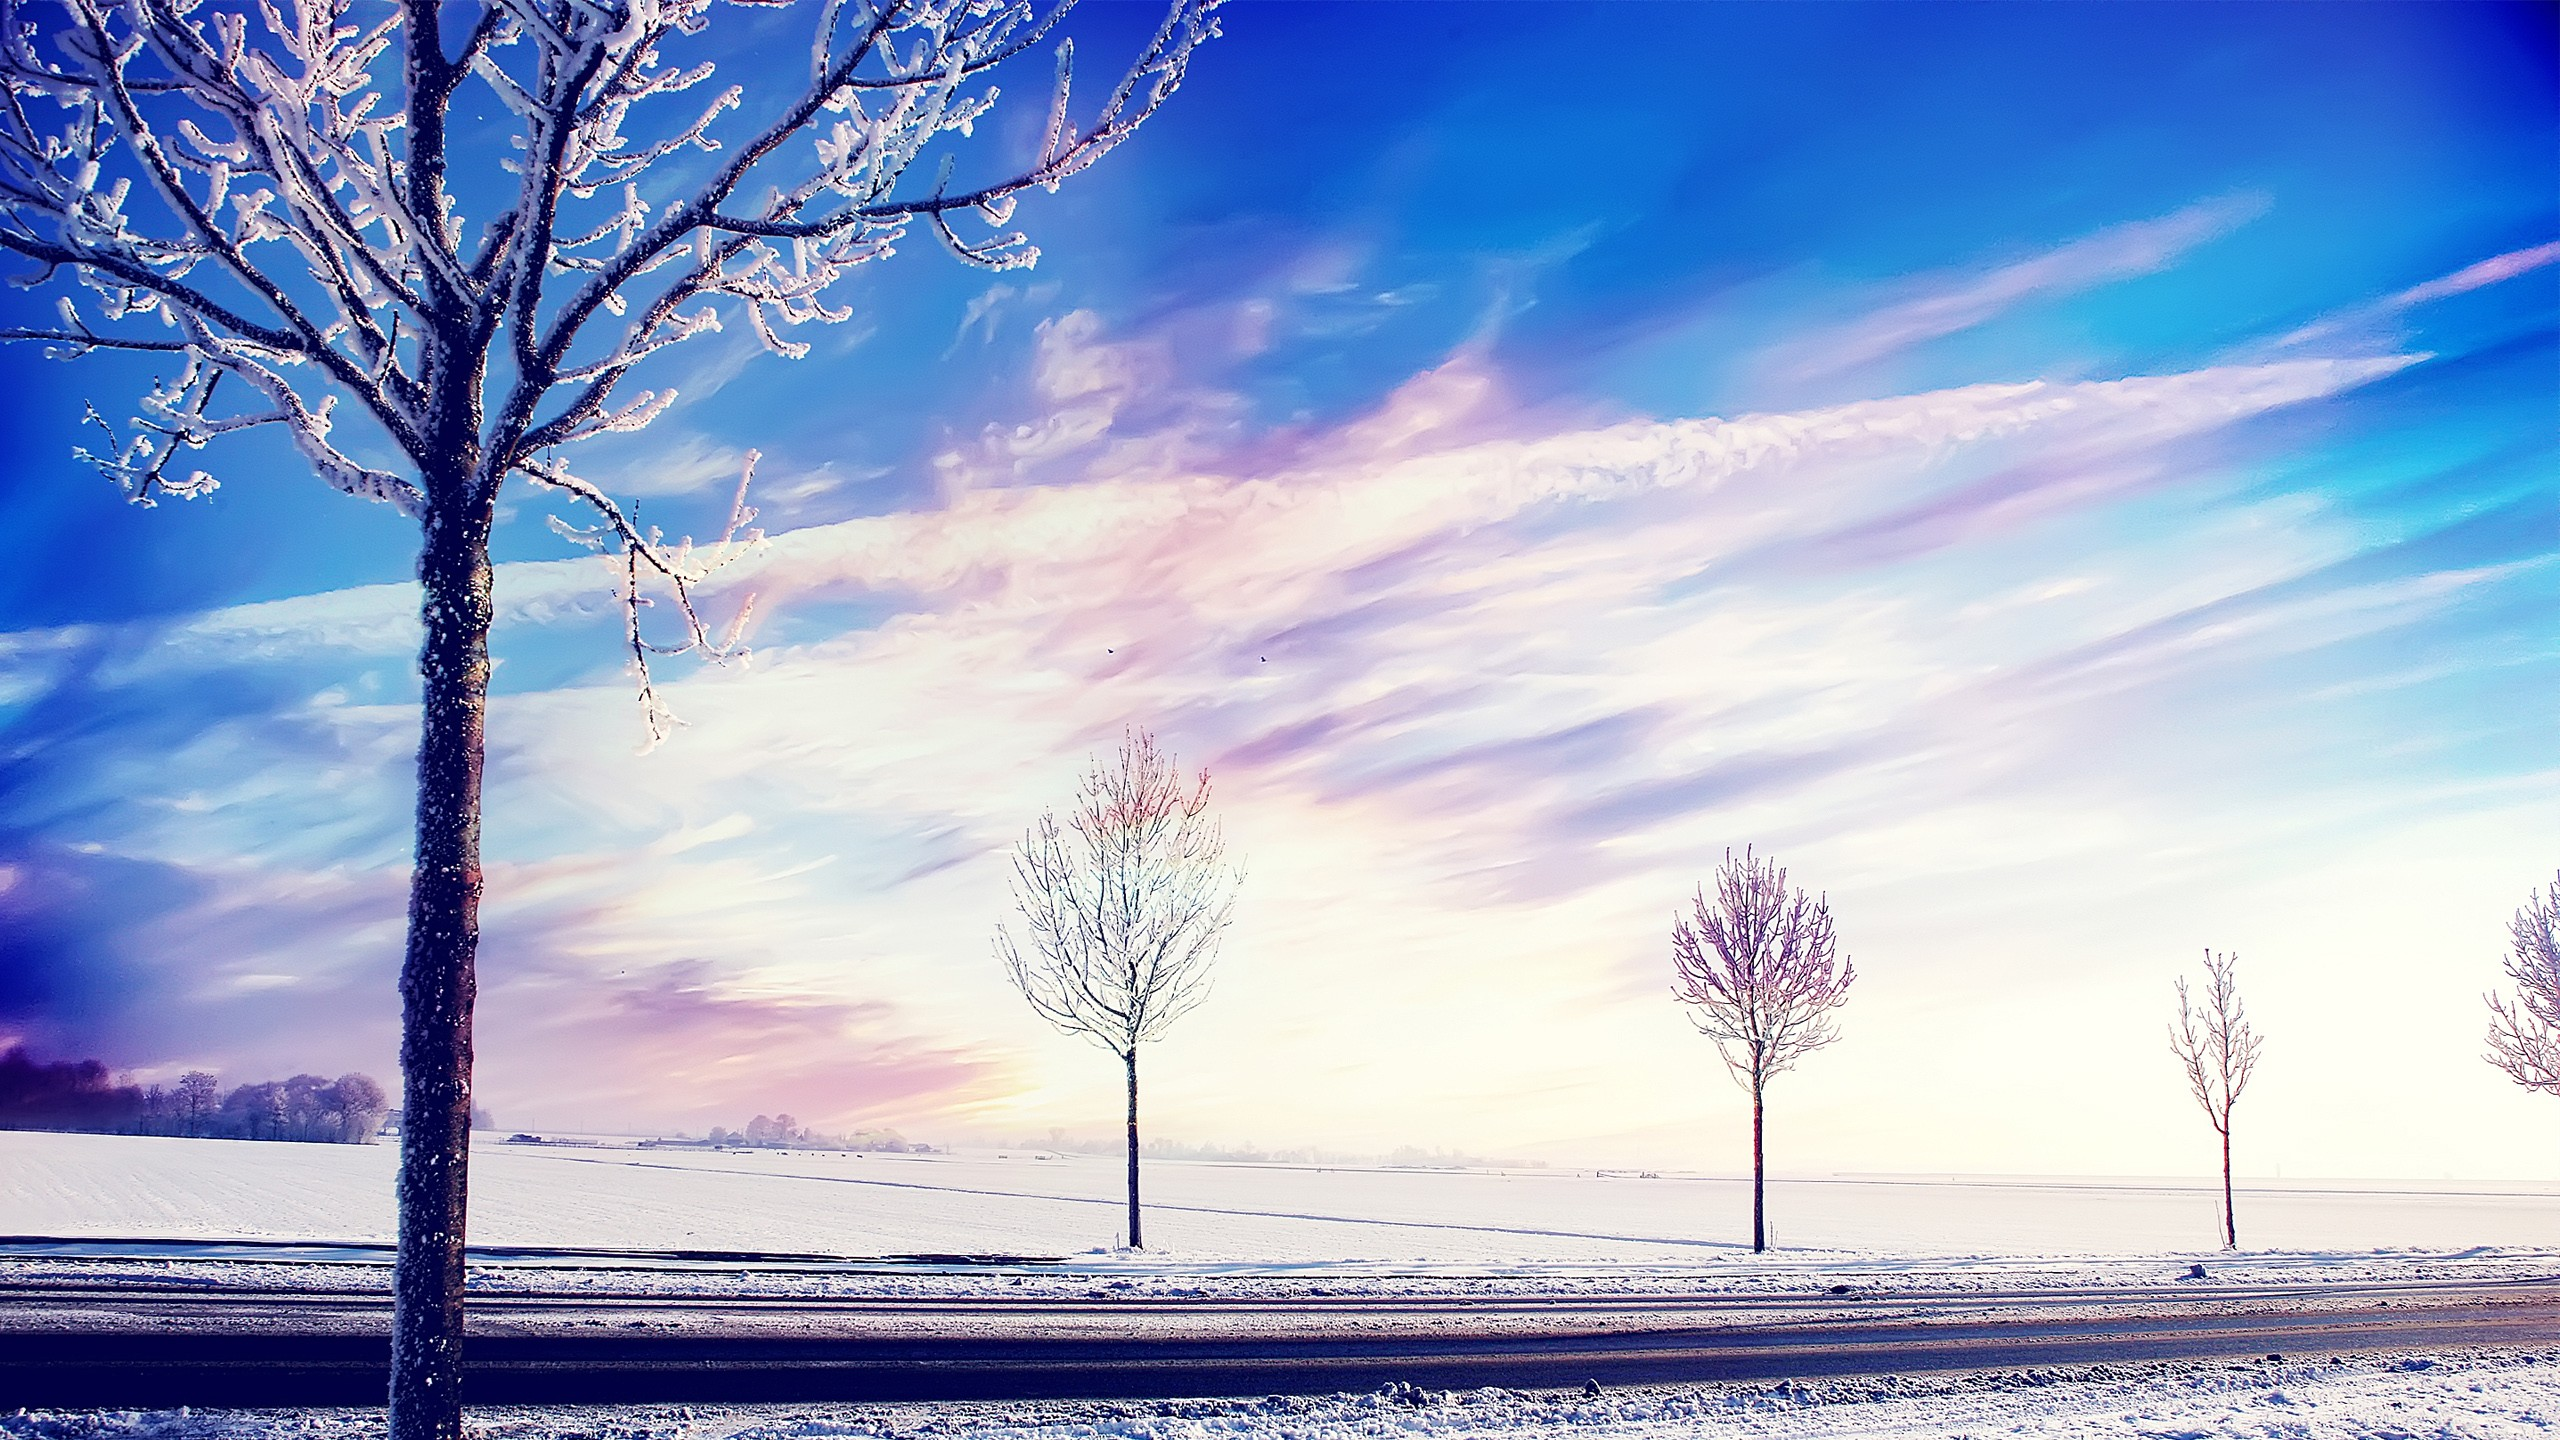 Beach Iphone Wallpaper Hd Snow Winter Trees Wallpapers Hd Wallpapers Id 14178